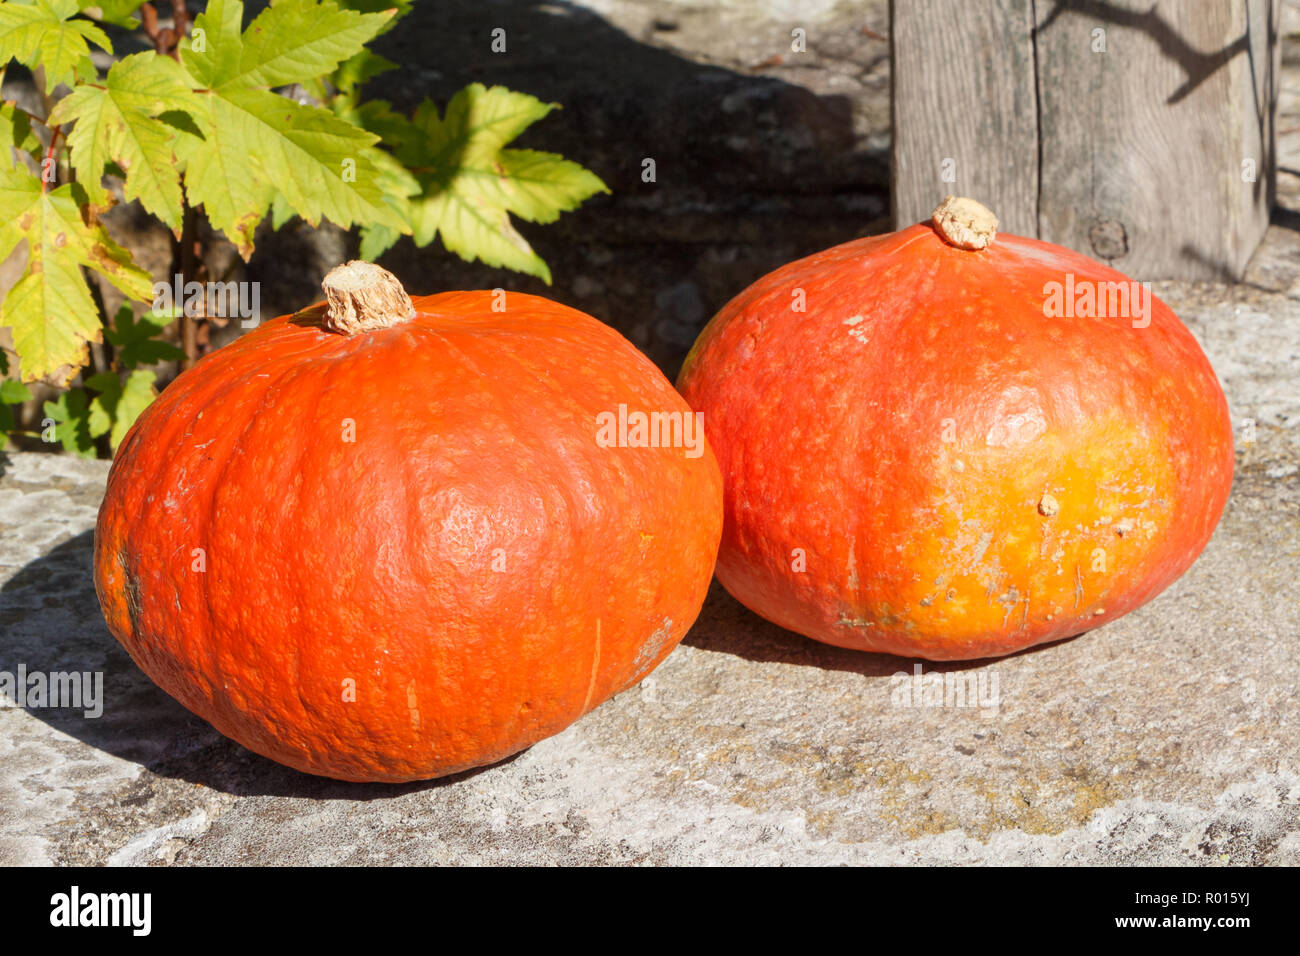 Two pumpkins on the coping of a well after harvesting in a vegetable garden during autumn - Stock Image